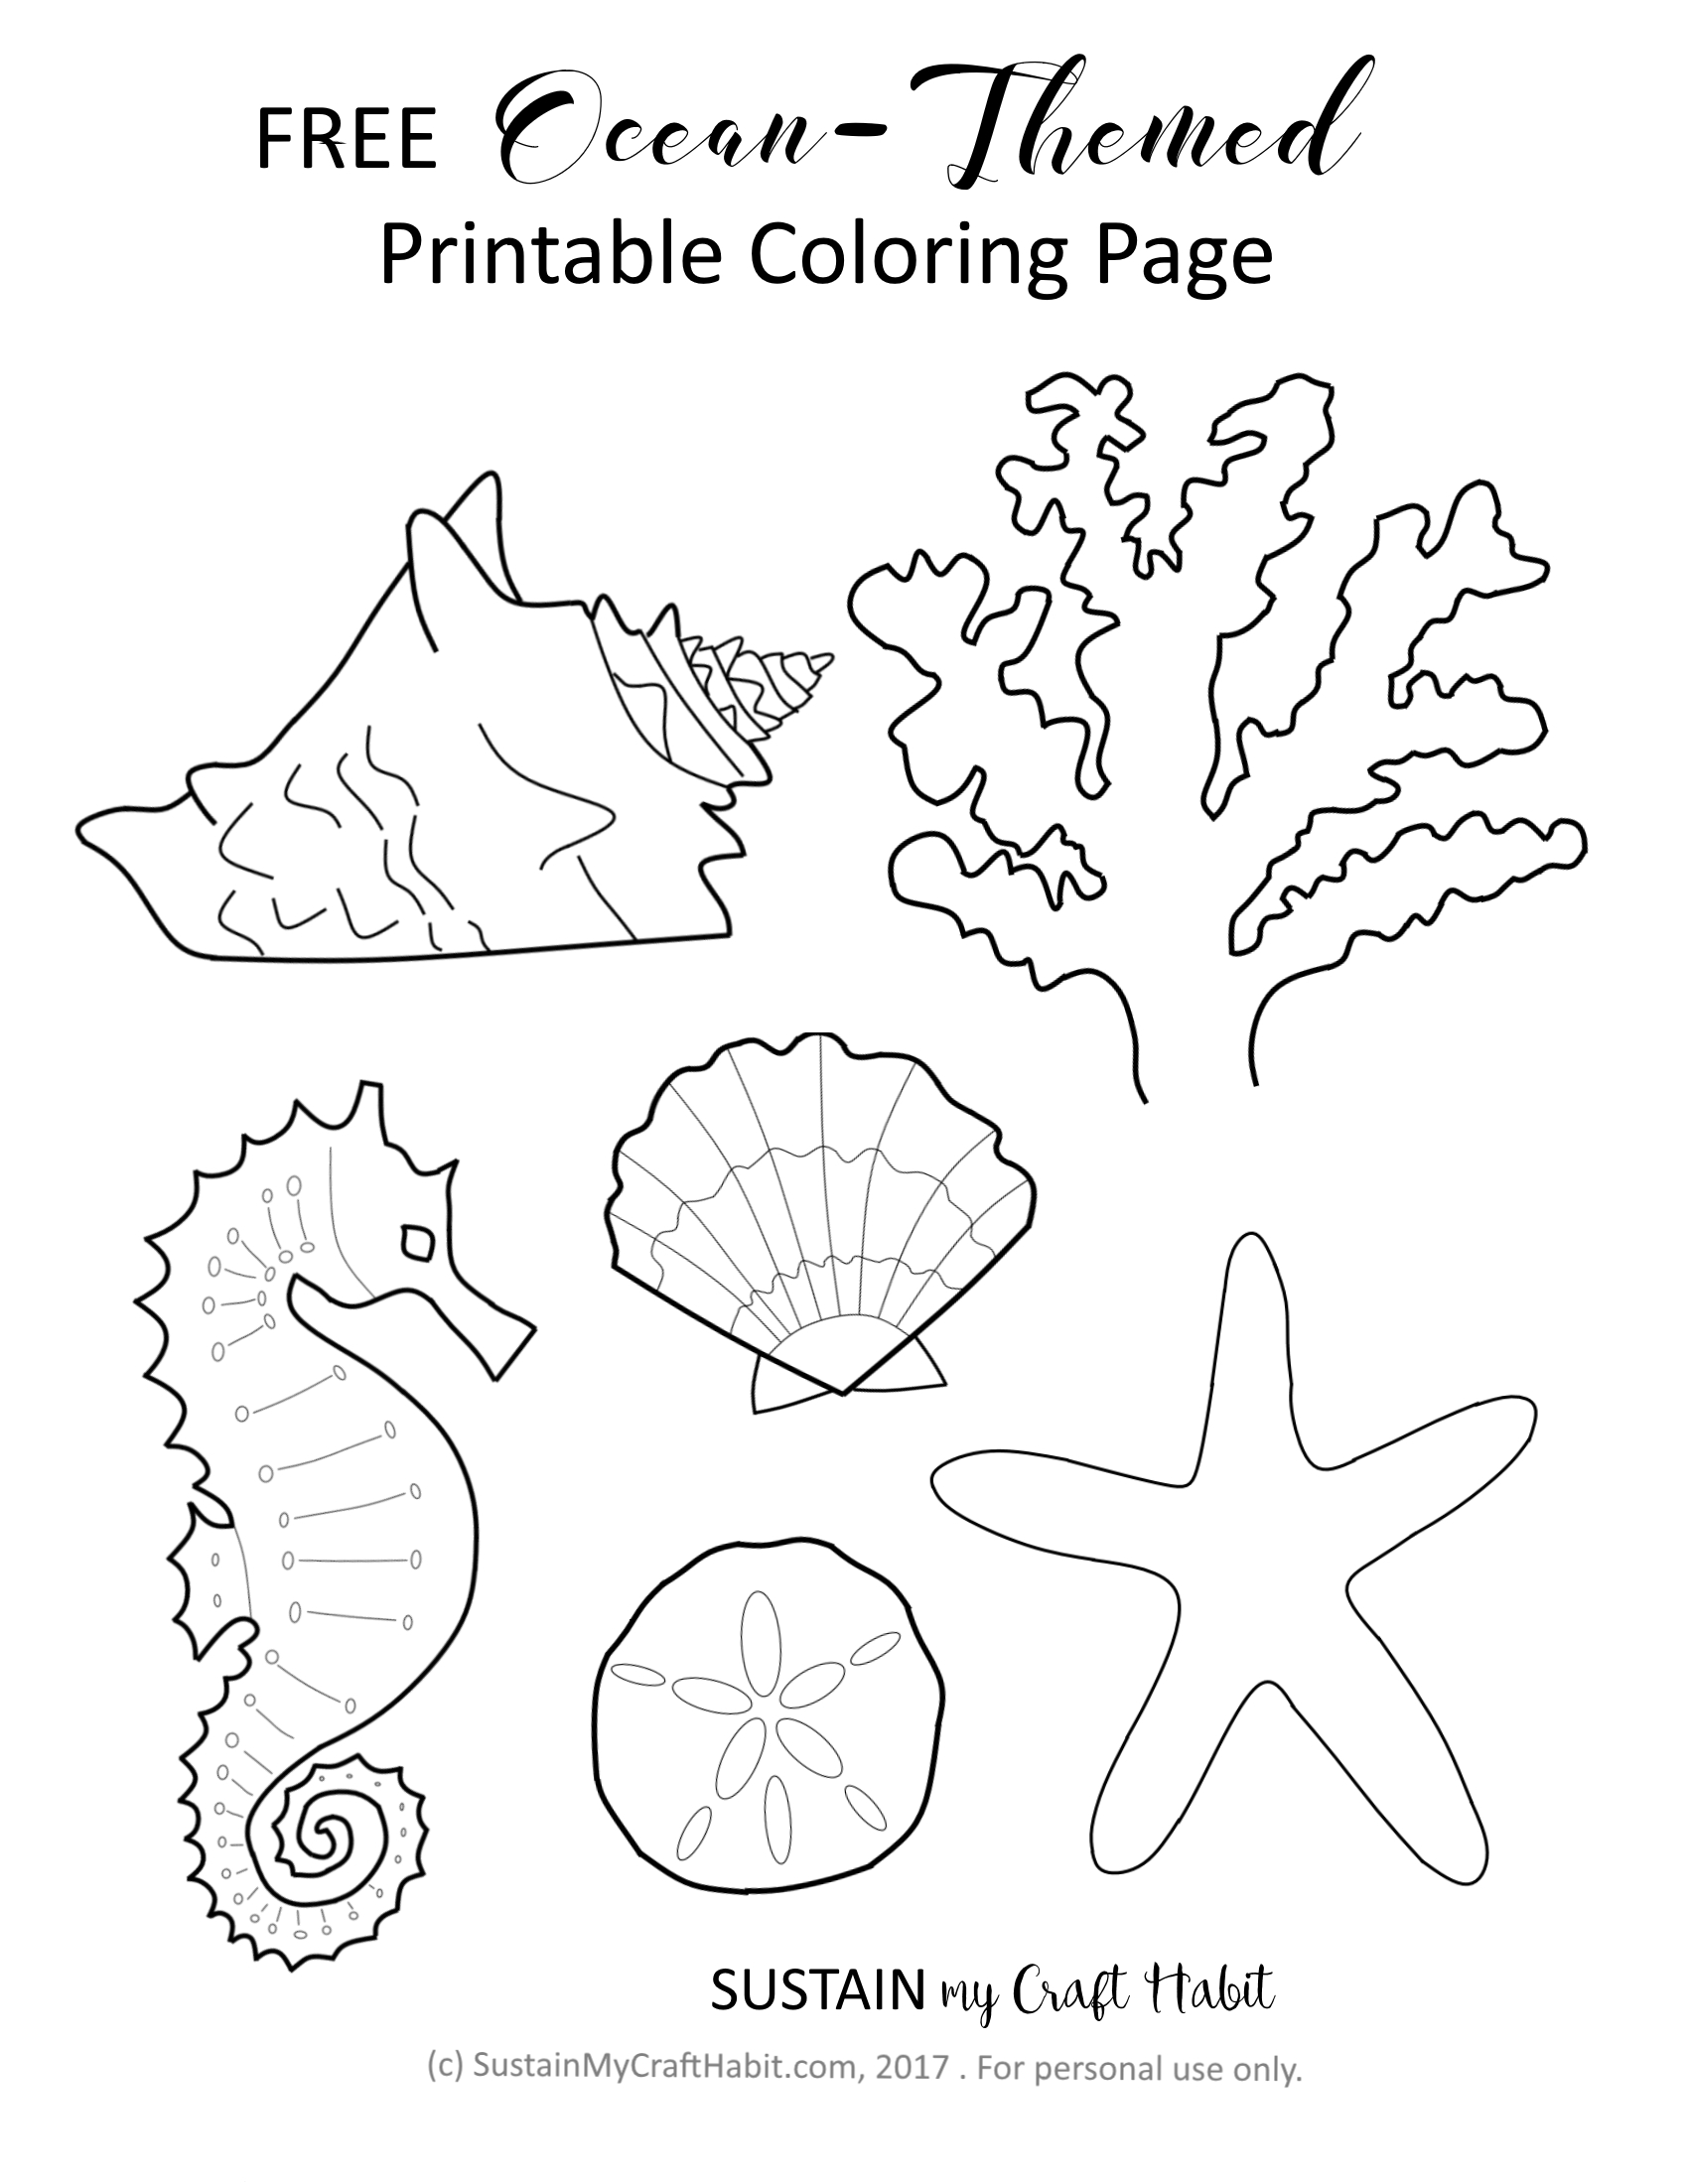 free ocean themed coloring page printable sustain my craft habit